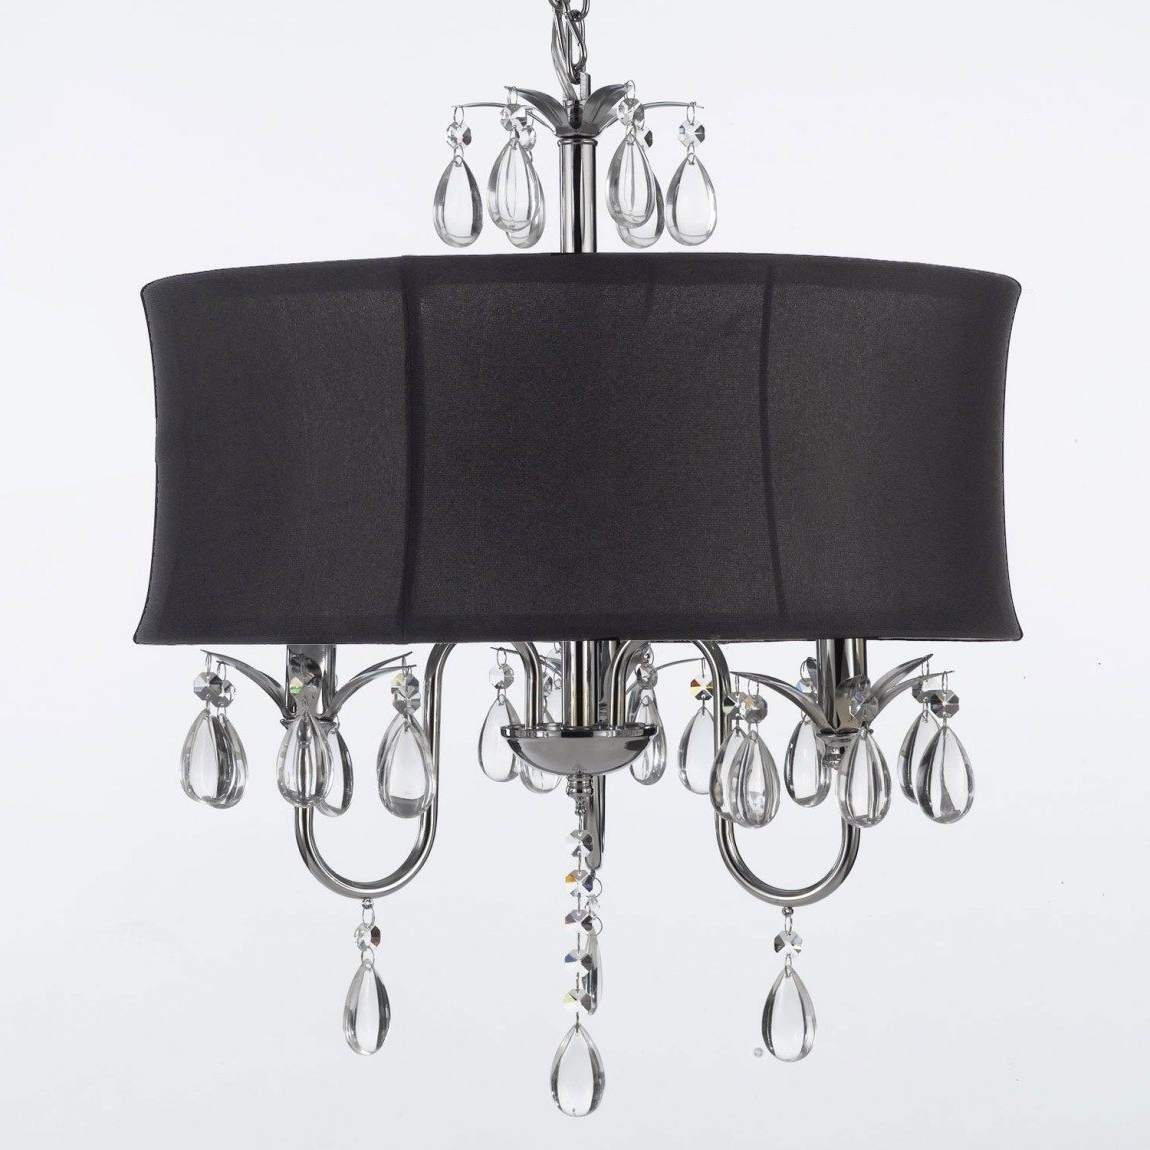 Astounding Black Drum Shade Crystal Chandeliers With Black Shade Pertaining To Latest Crystal Chandeliers With Shades (View 12 of 15)